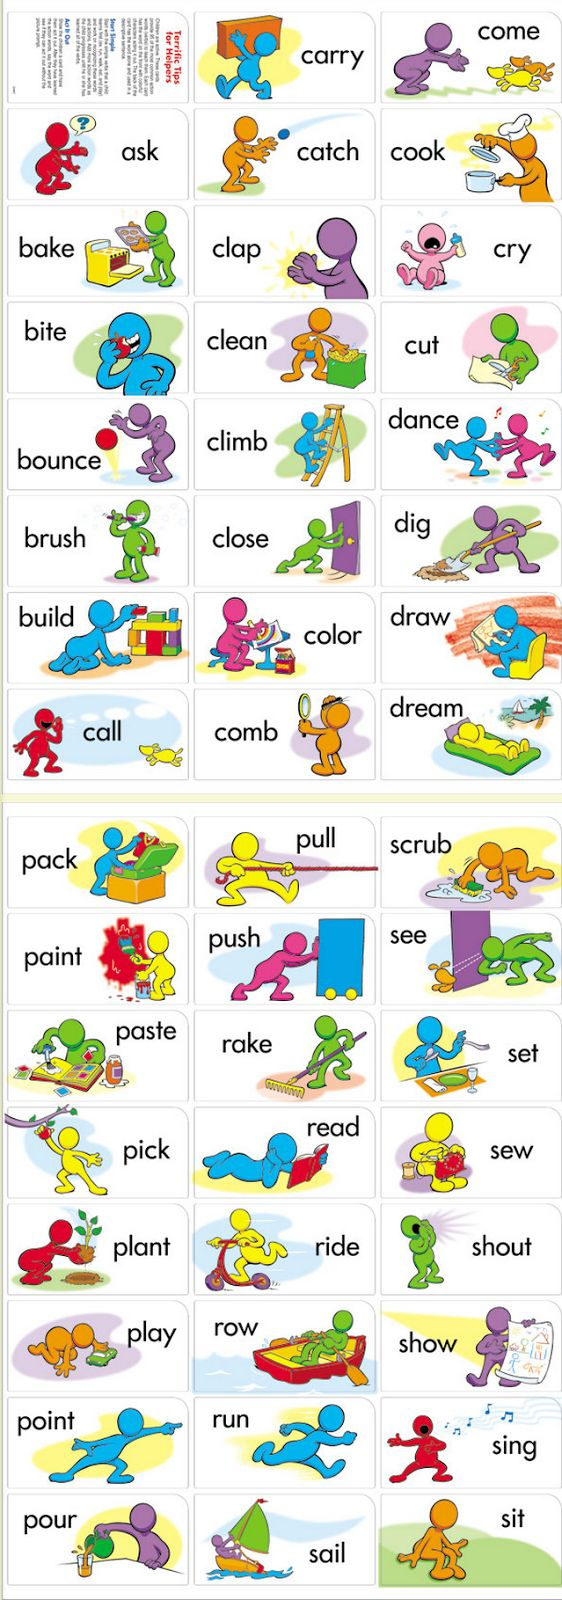 #verbs in pictures